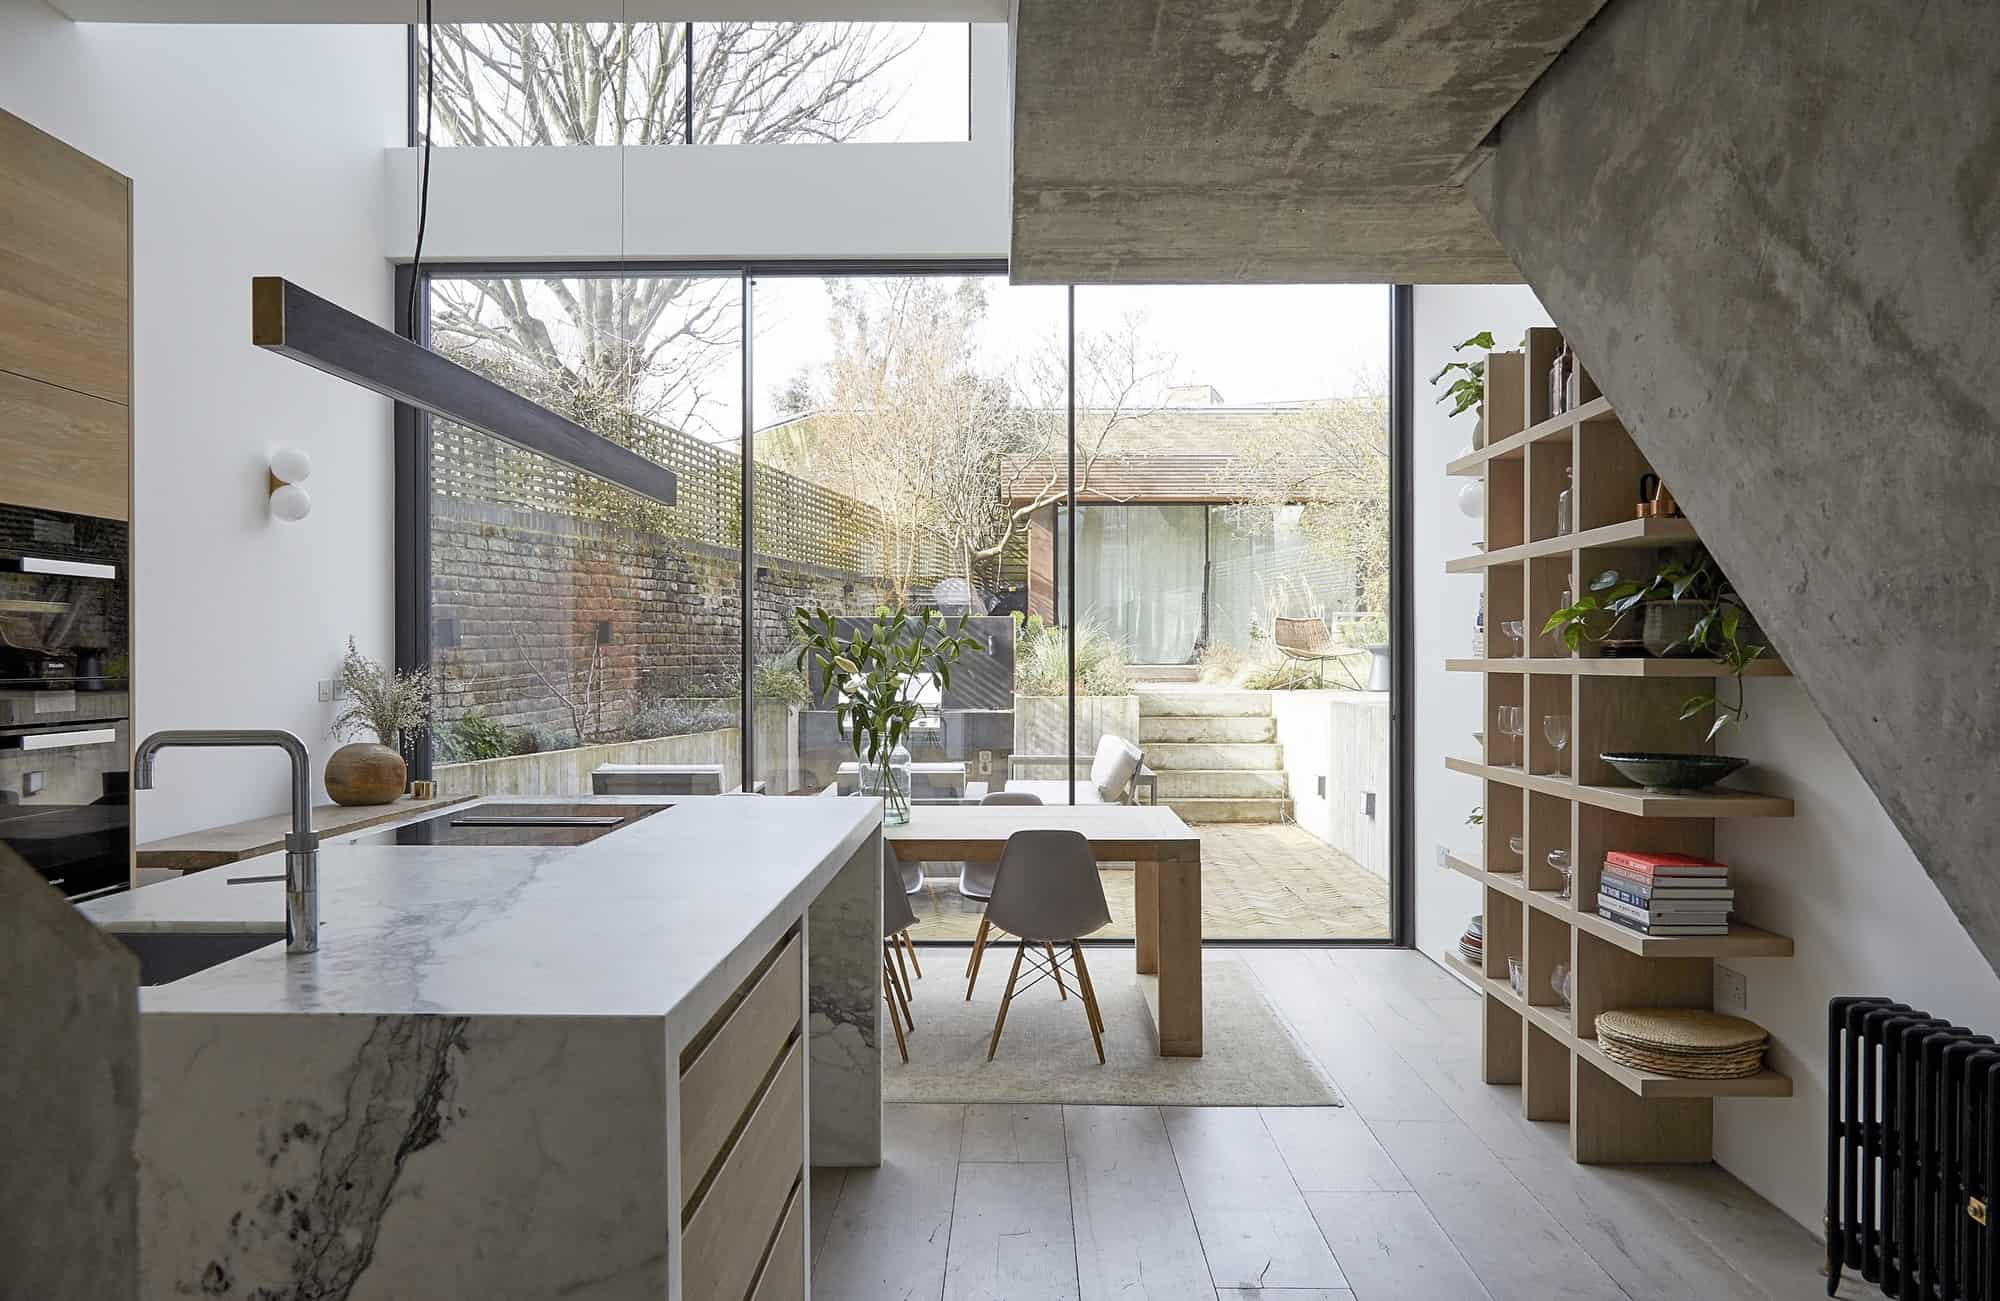 Greenwood E8 - Beautiful scandi styled contemporary home in London for photoshoots and filming - The Location Guys